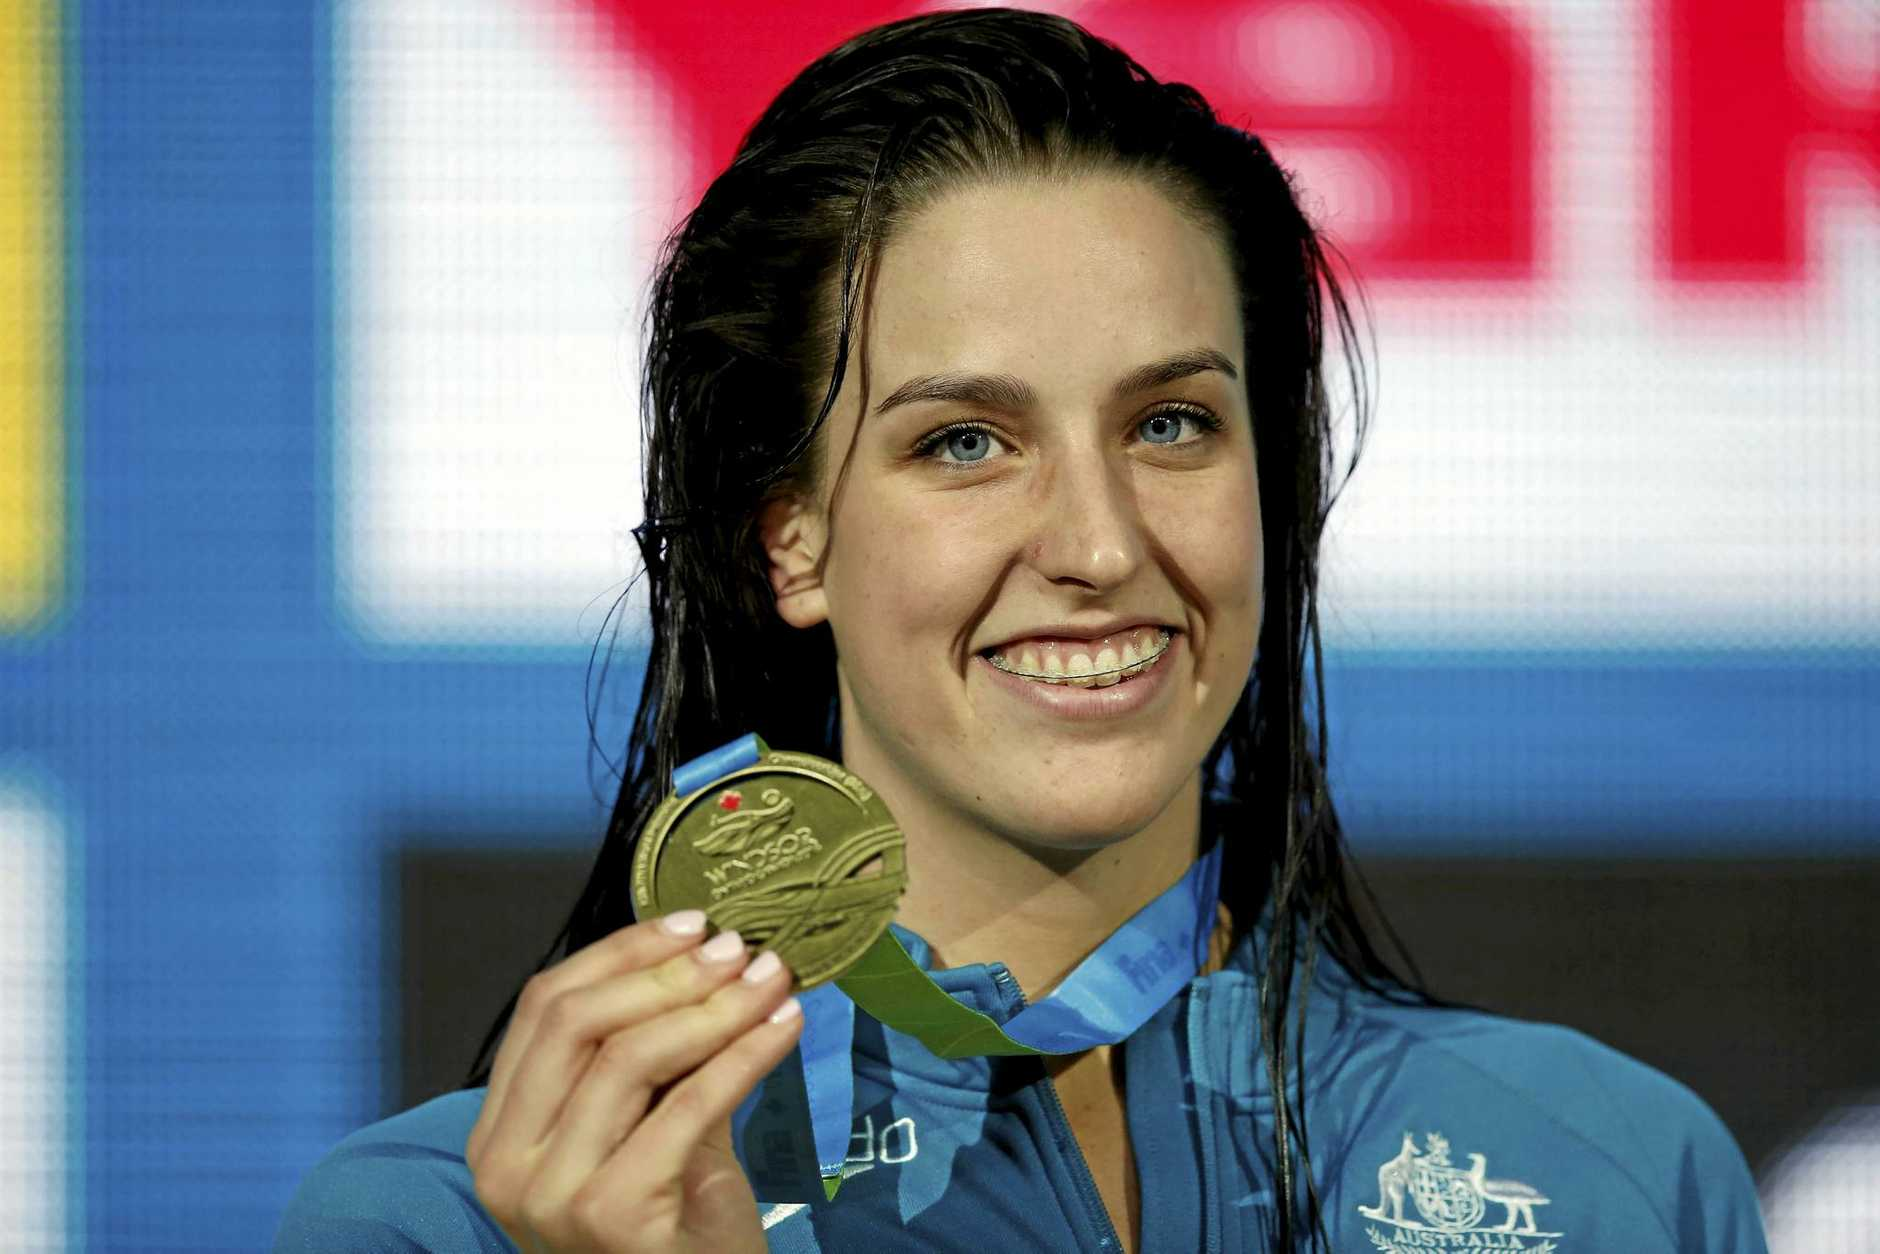 epa05666735 Brittany Elmslie of Australia poses with her Gold medal after winning in the women's 100m Freestyle Final during the 13th FINA Short Course World Swimming Championships at WFCU Centre in Windsor, Ontario, Canada, 08 December 2016.  EPA/PATRICK B. KRAEMER